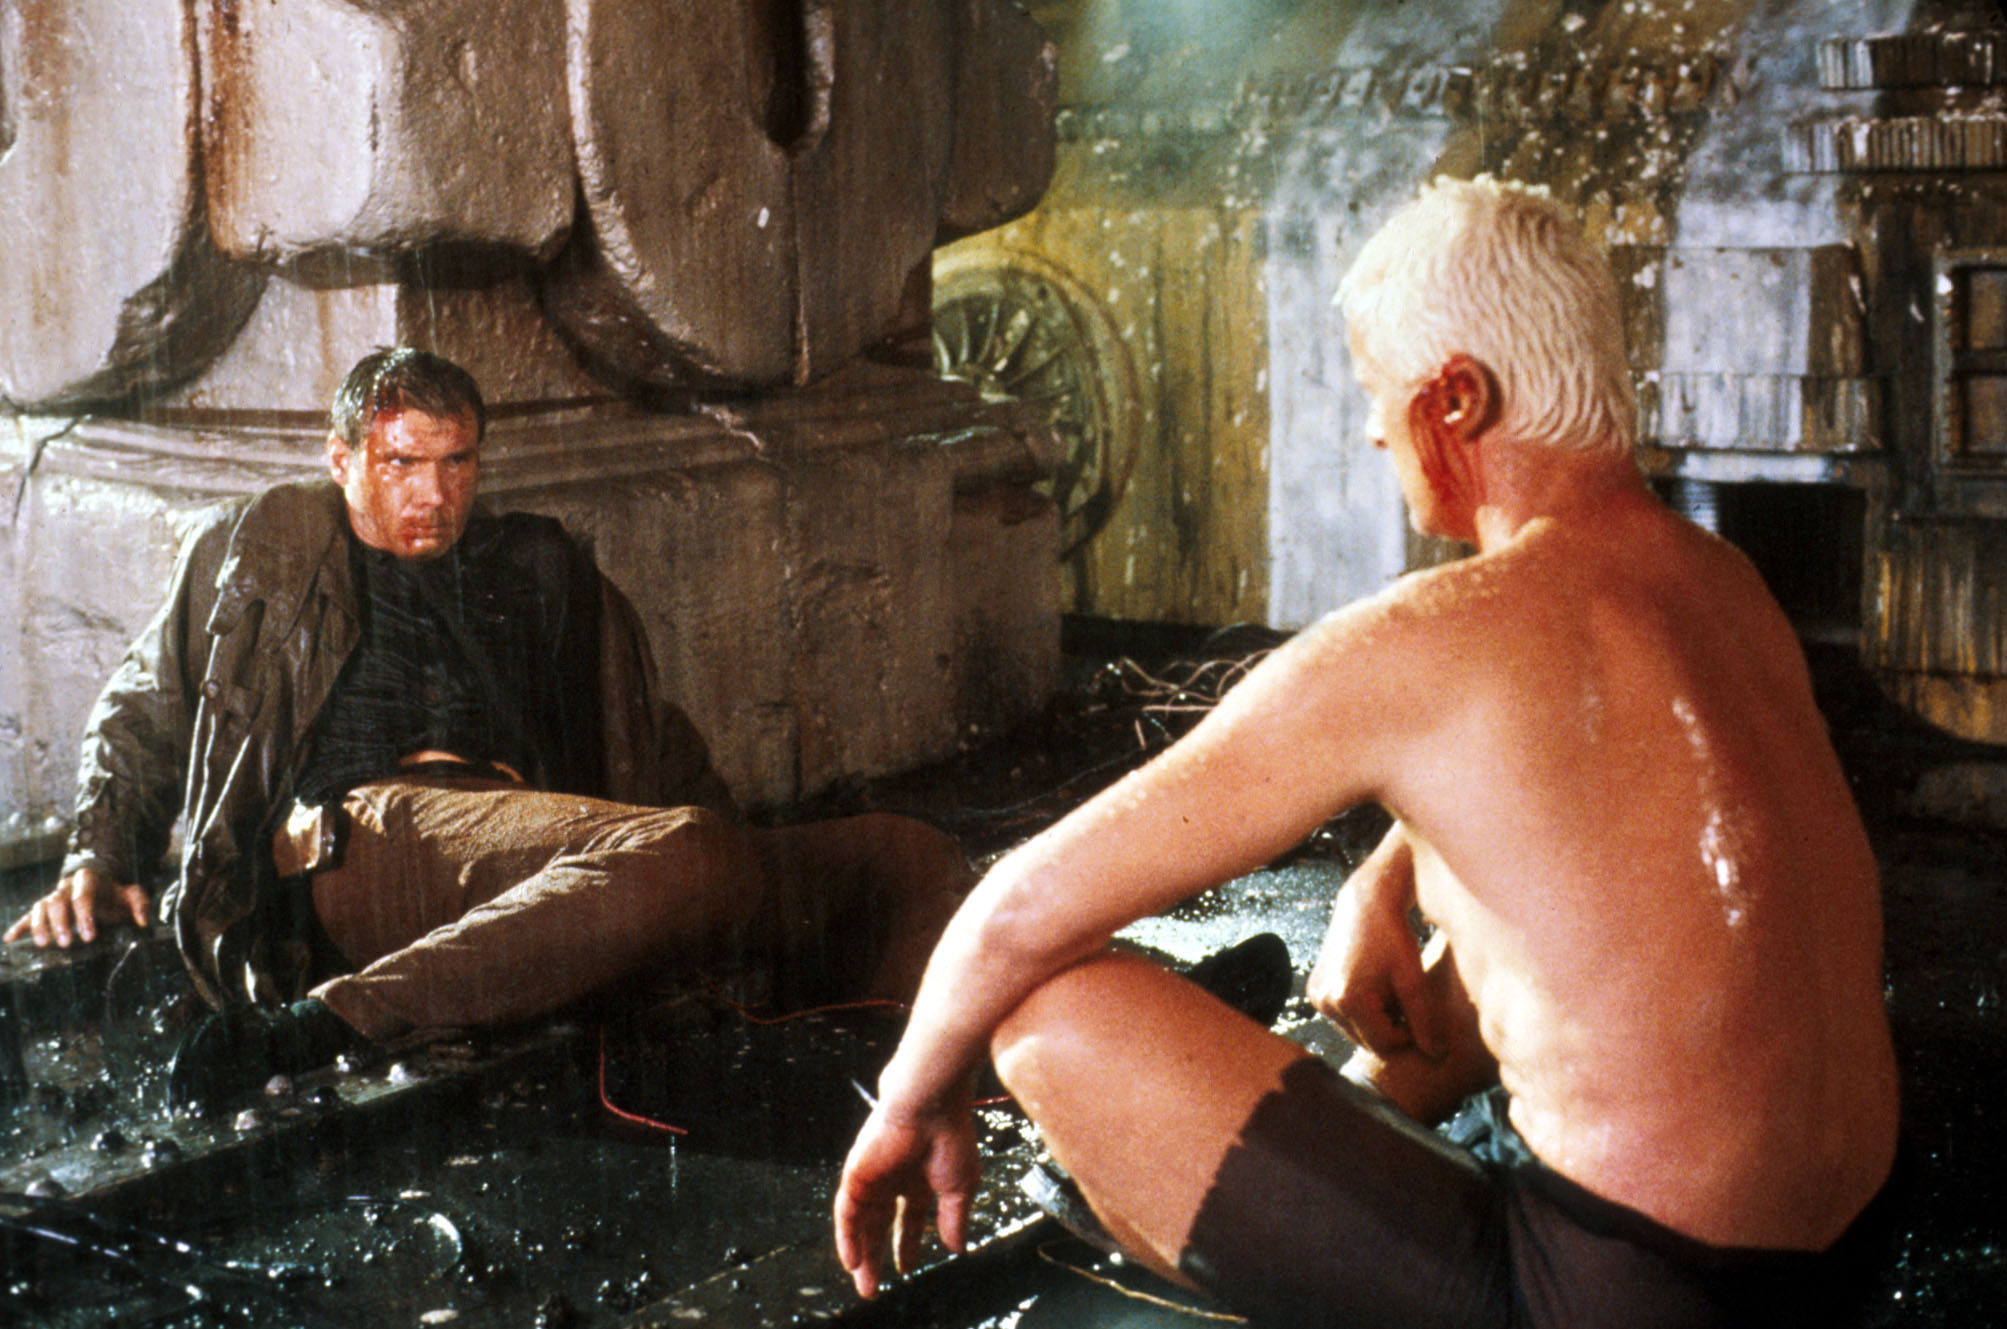 Deckard (Harrison Ford) and Replicant Roy Batty (Rutger Hauer) in the Ridley Scott film Blade Runner